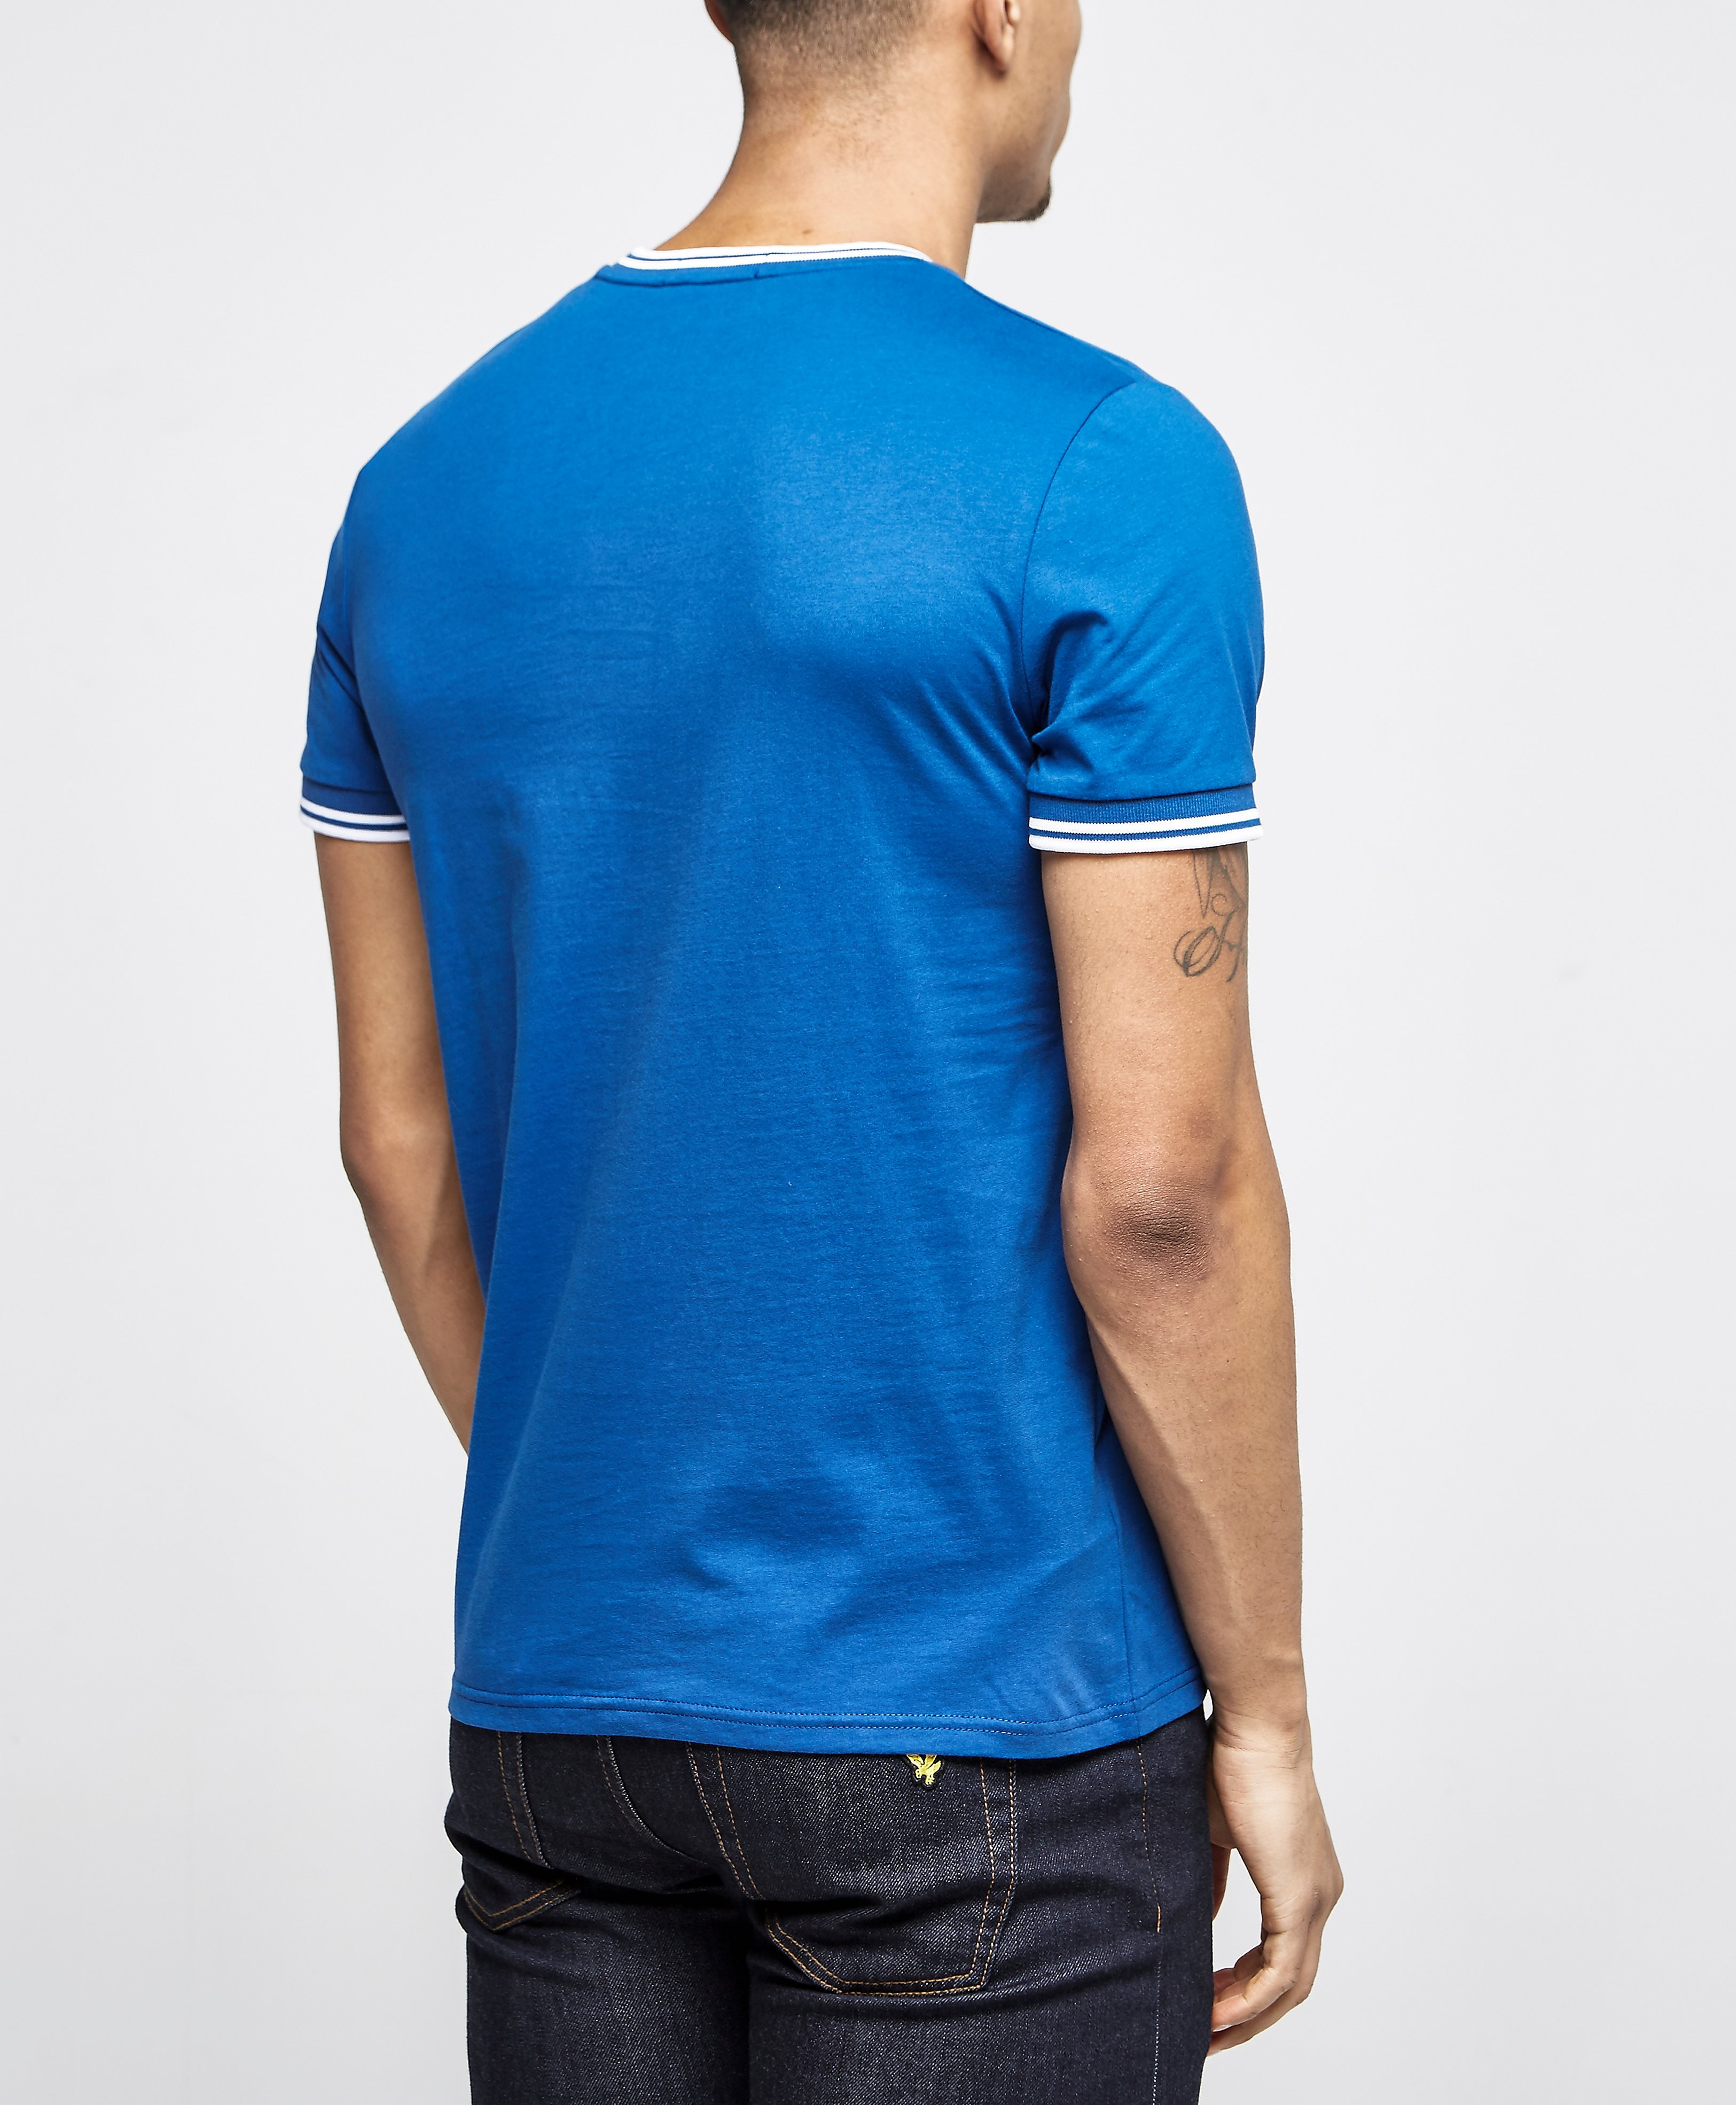 Fred Perry Tipped Crew T-Shirt - Exclusive